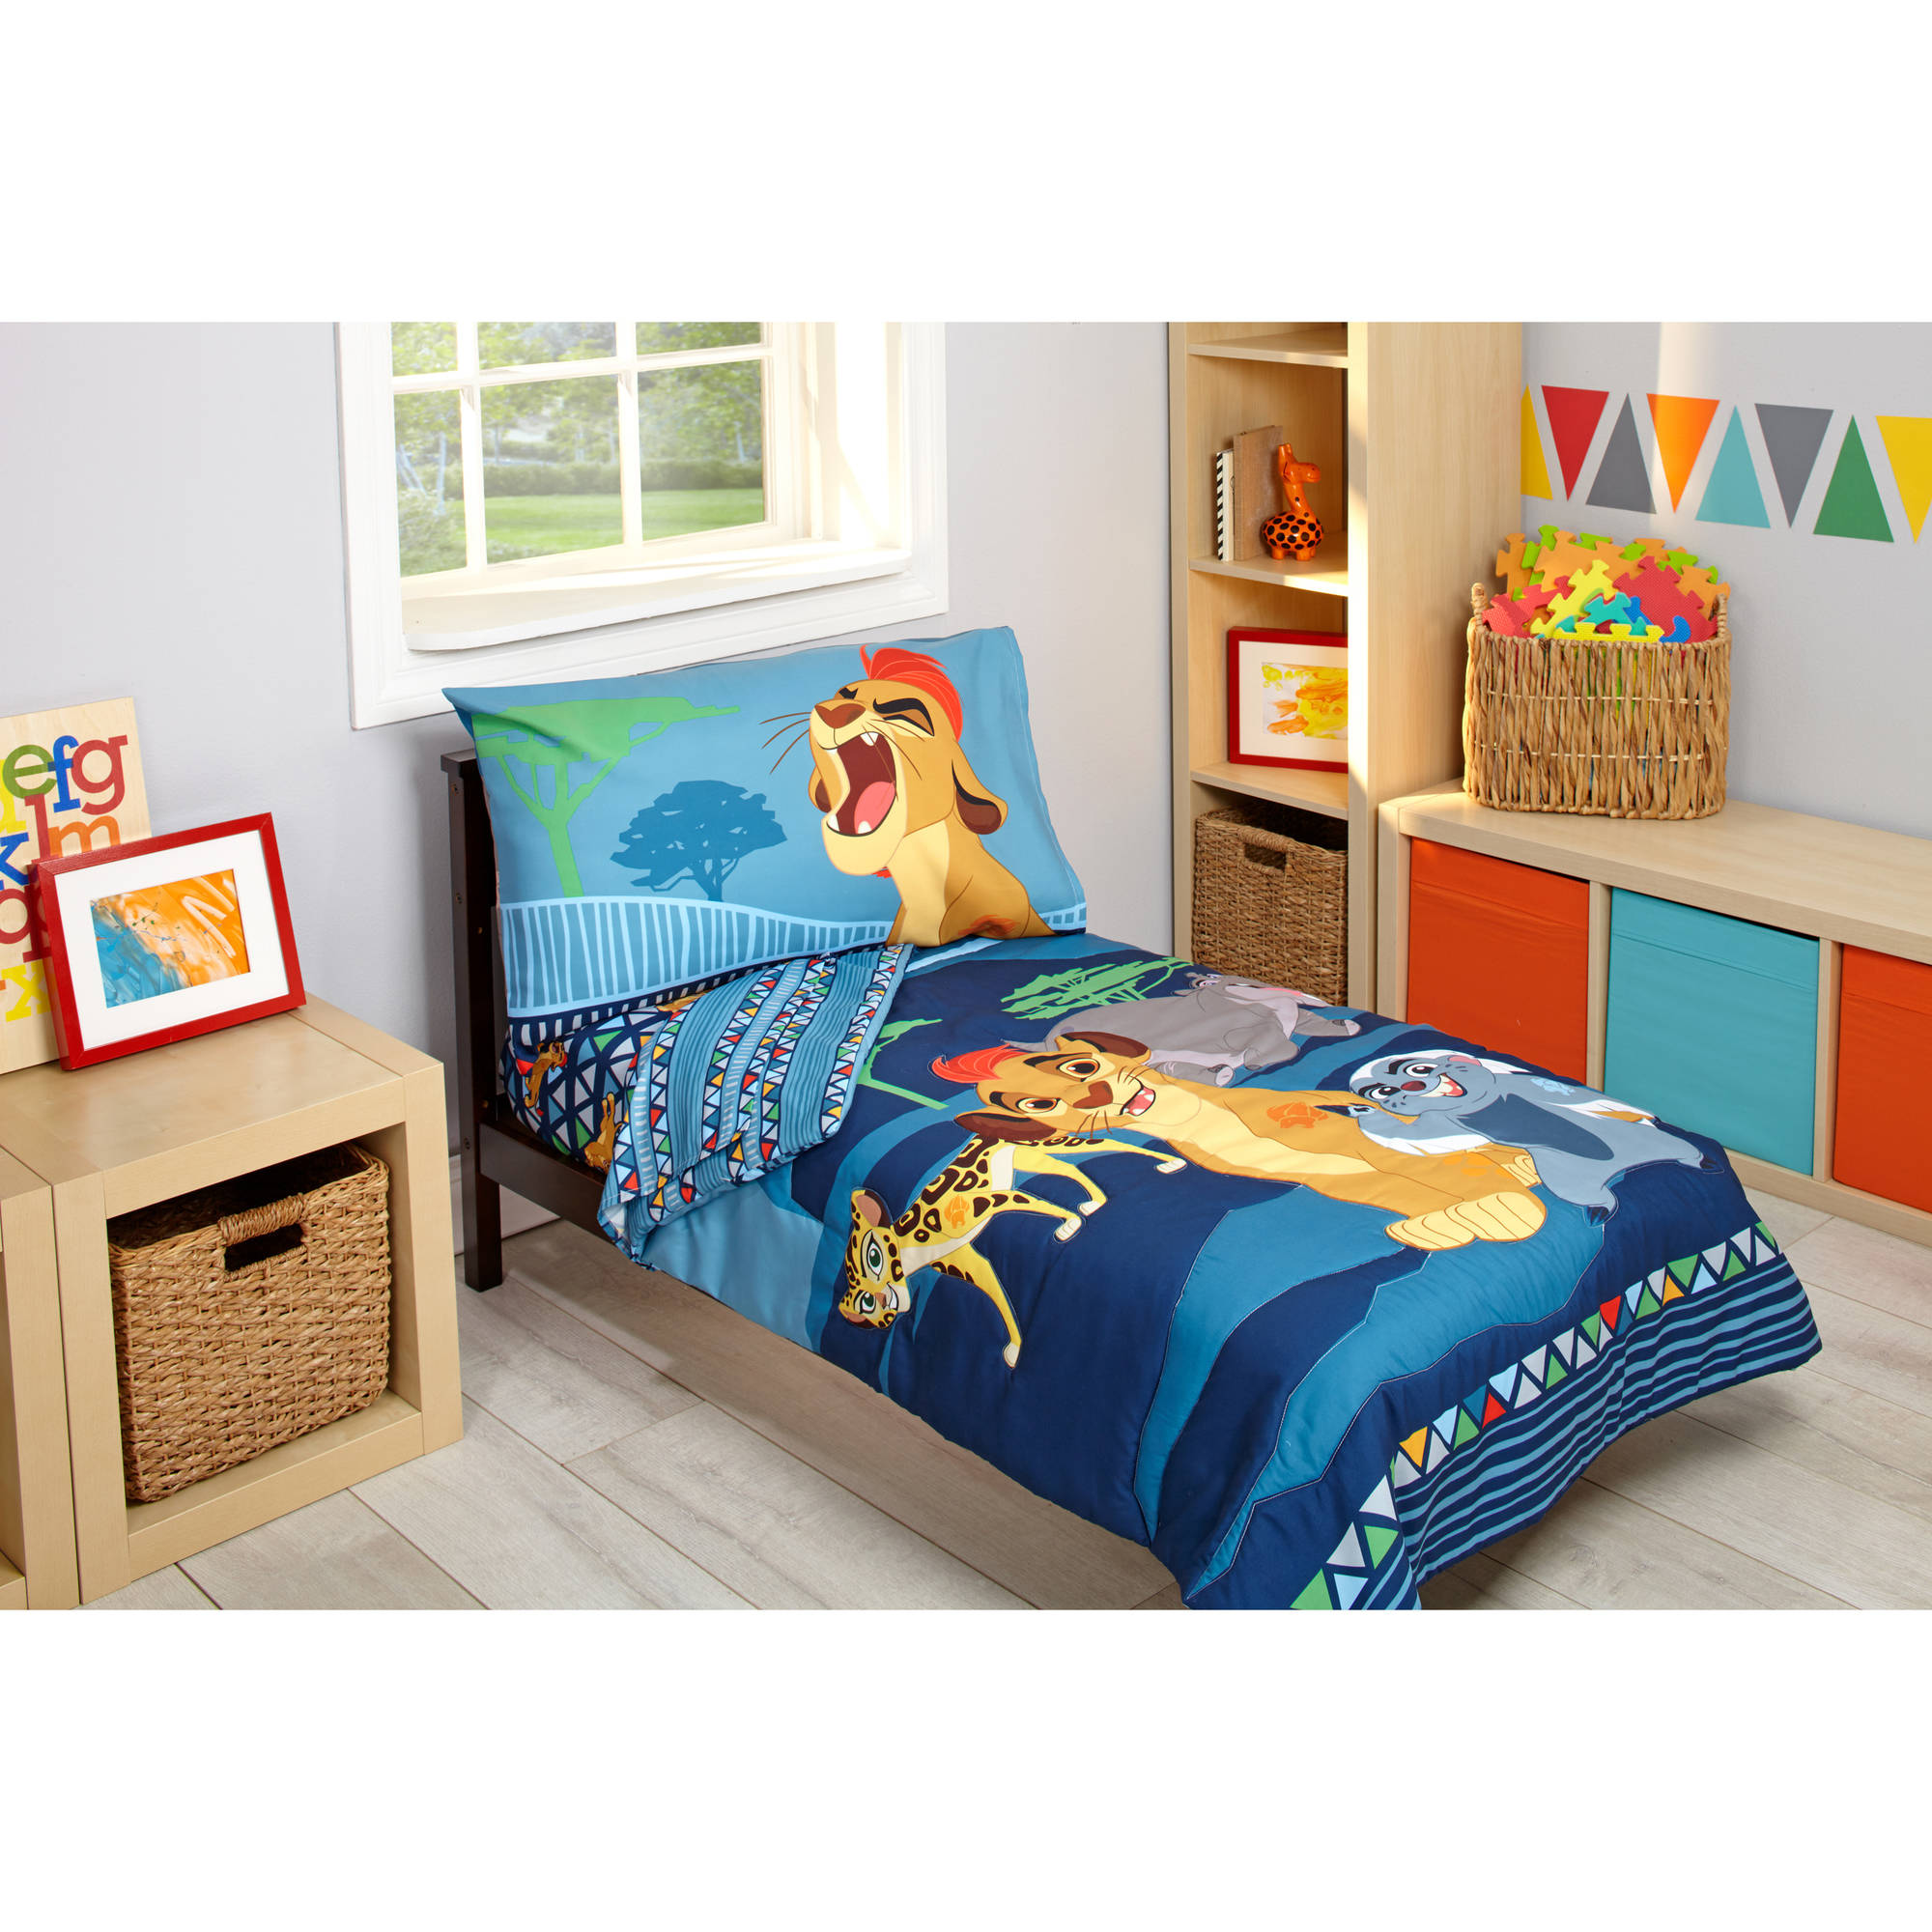 Disney Lion Guard Wild Team 4 Piece Toddler Bedding Set